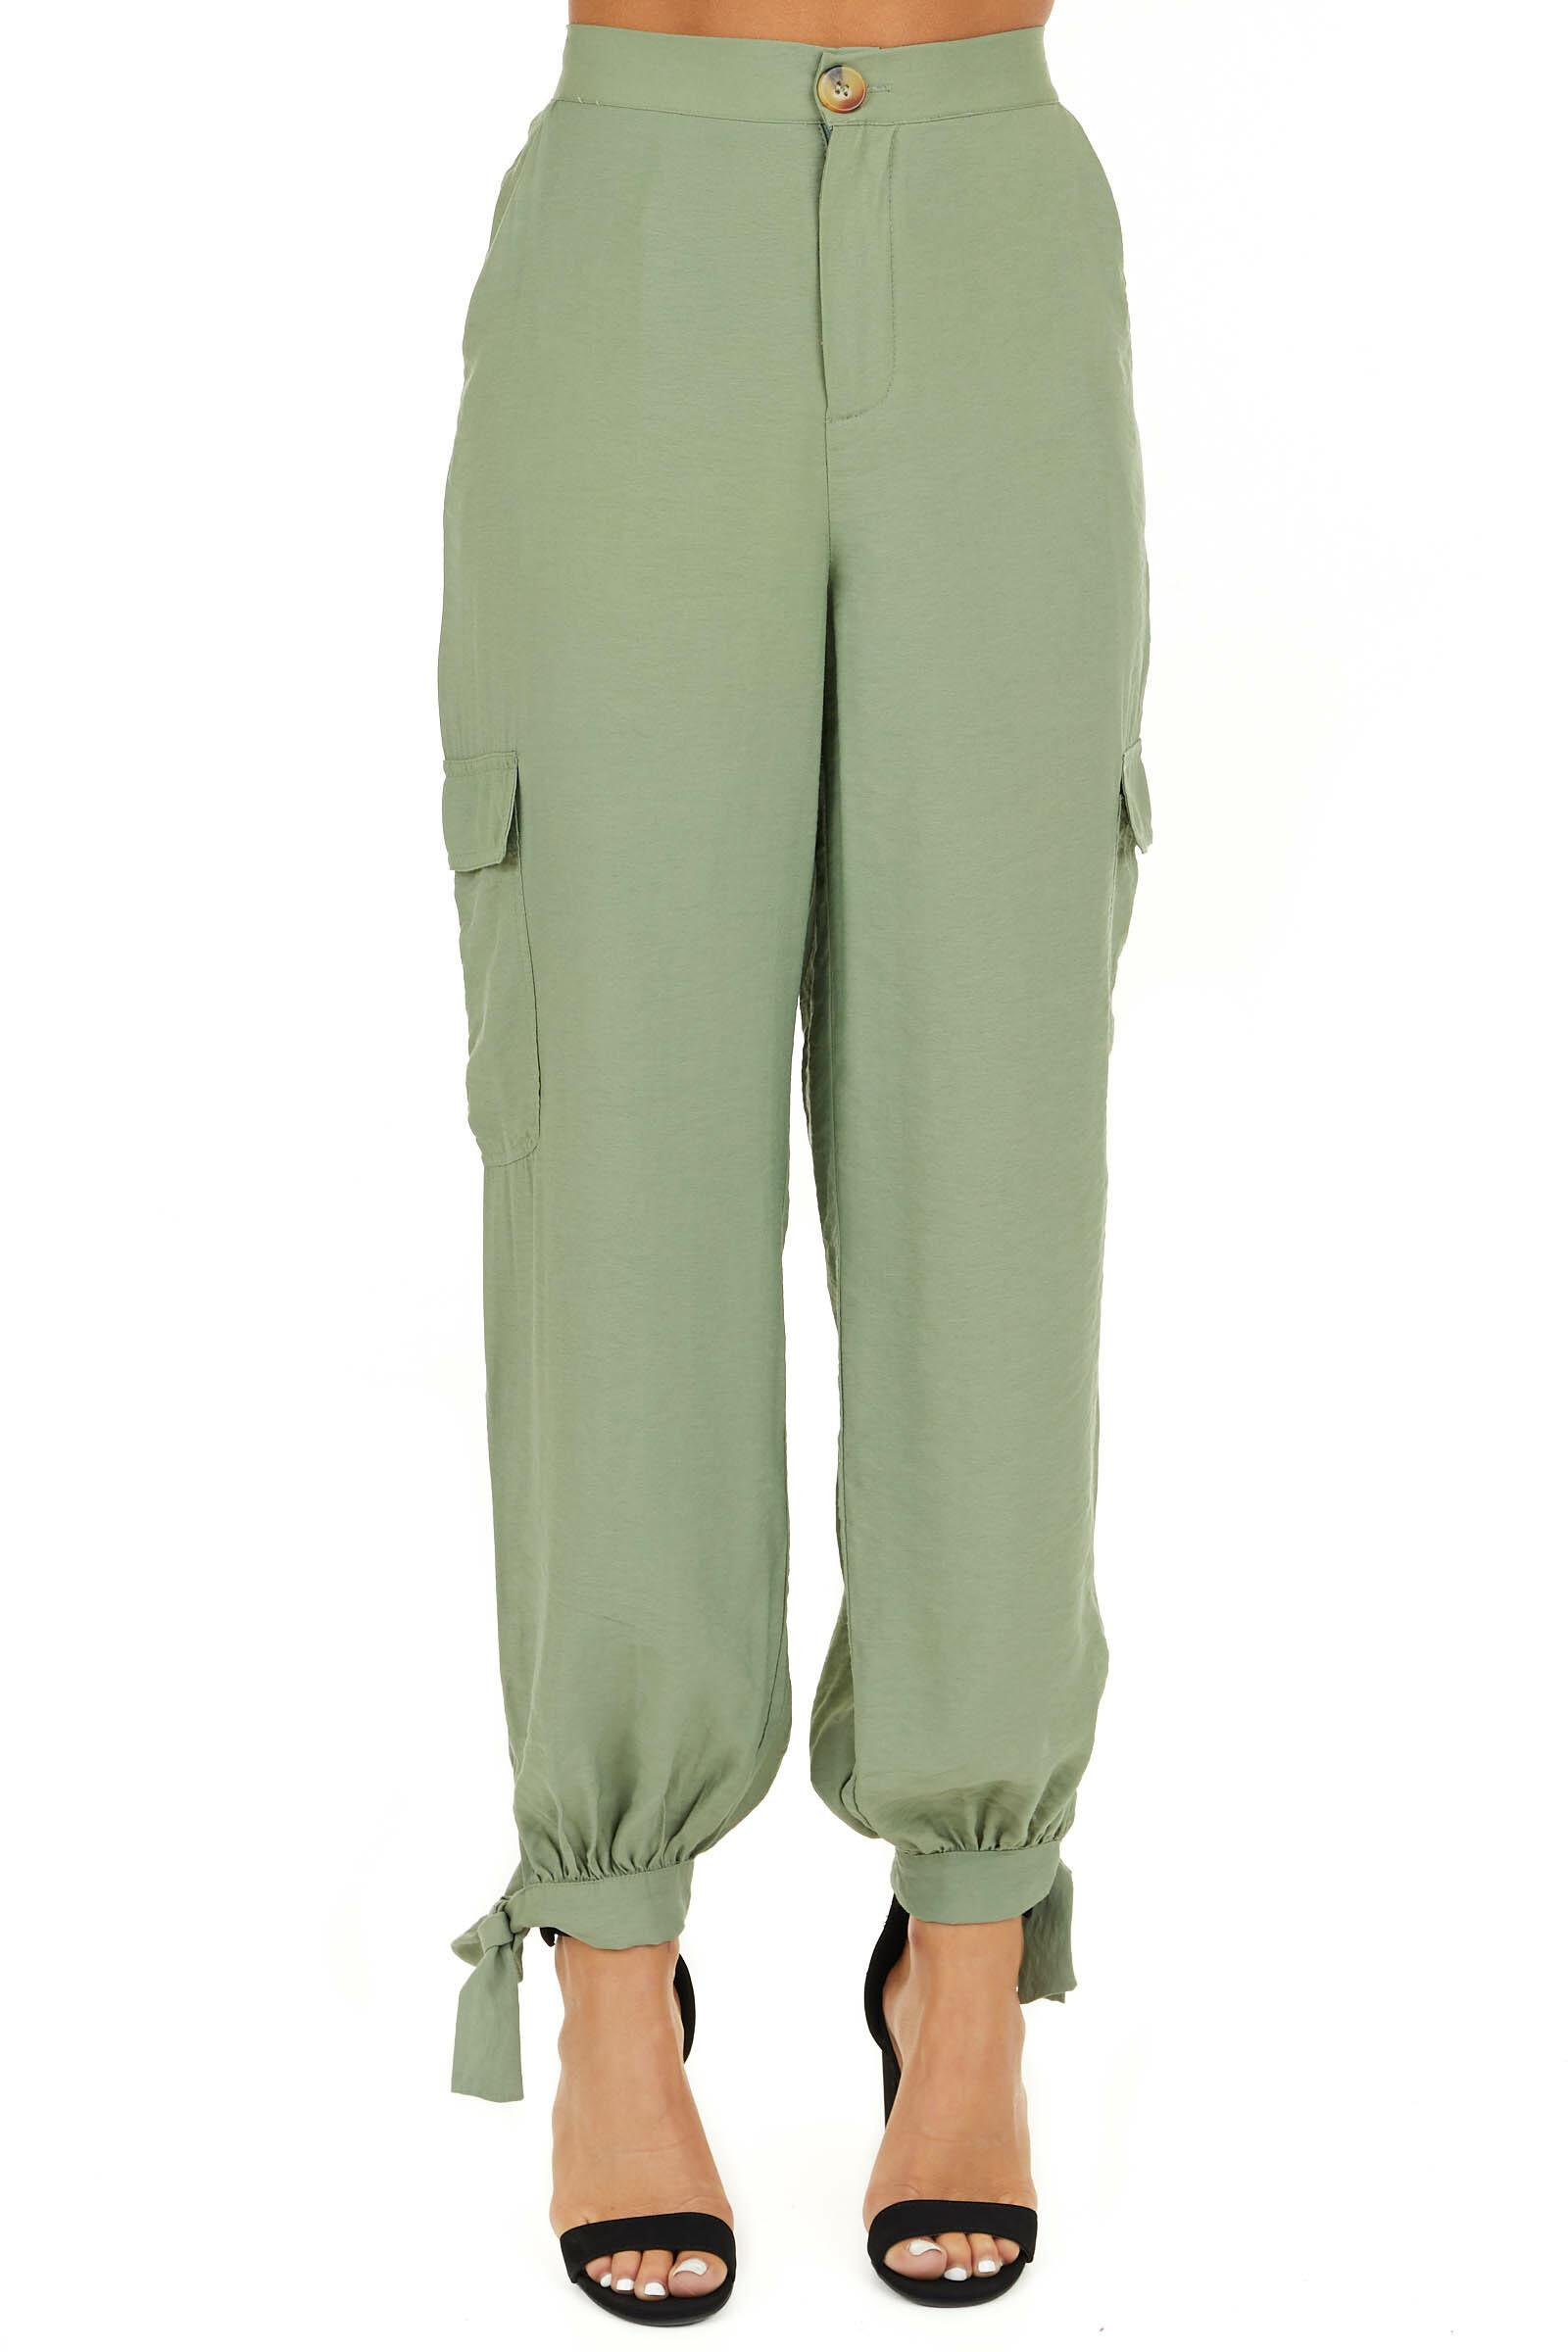 Pistachio Green High Waisted Cargo Pants with Ankle Ties front view